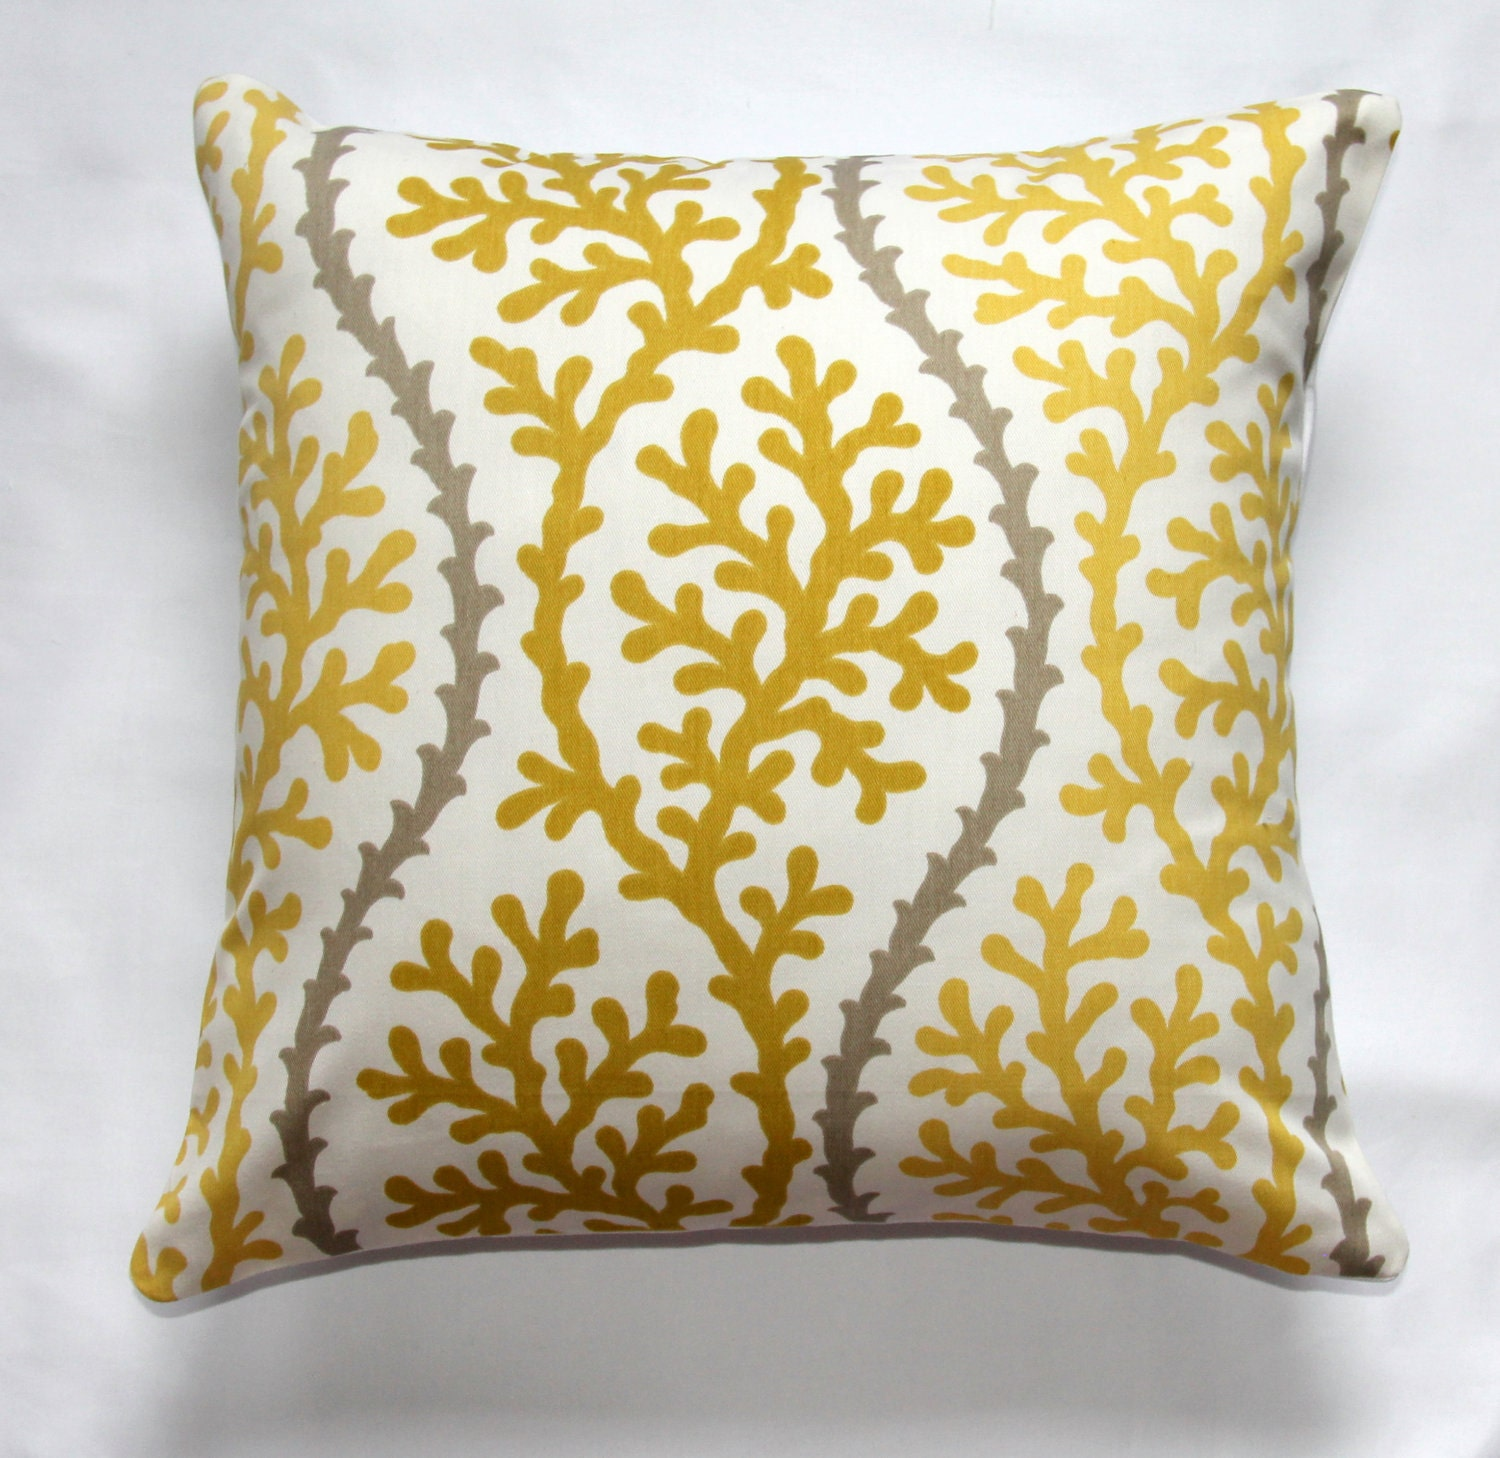 Pillows decorative pillow accent pillow throw pillow designer for Decor pillows